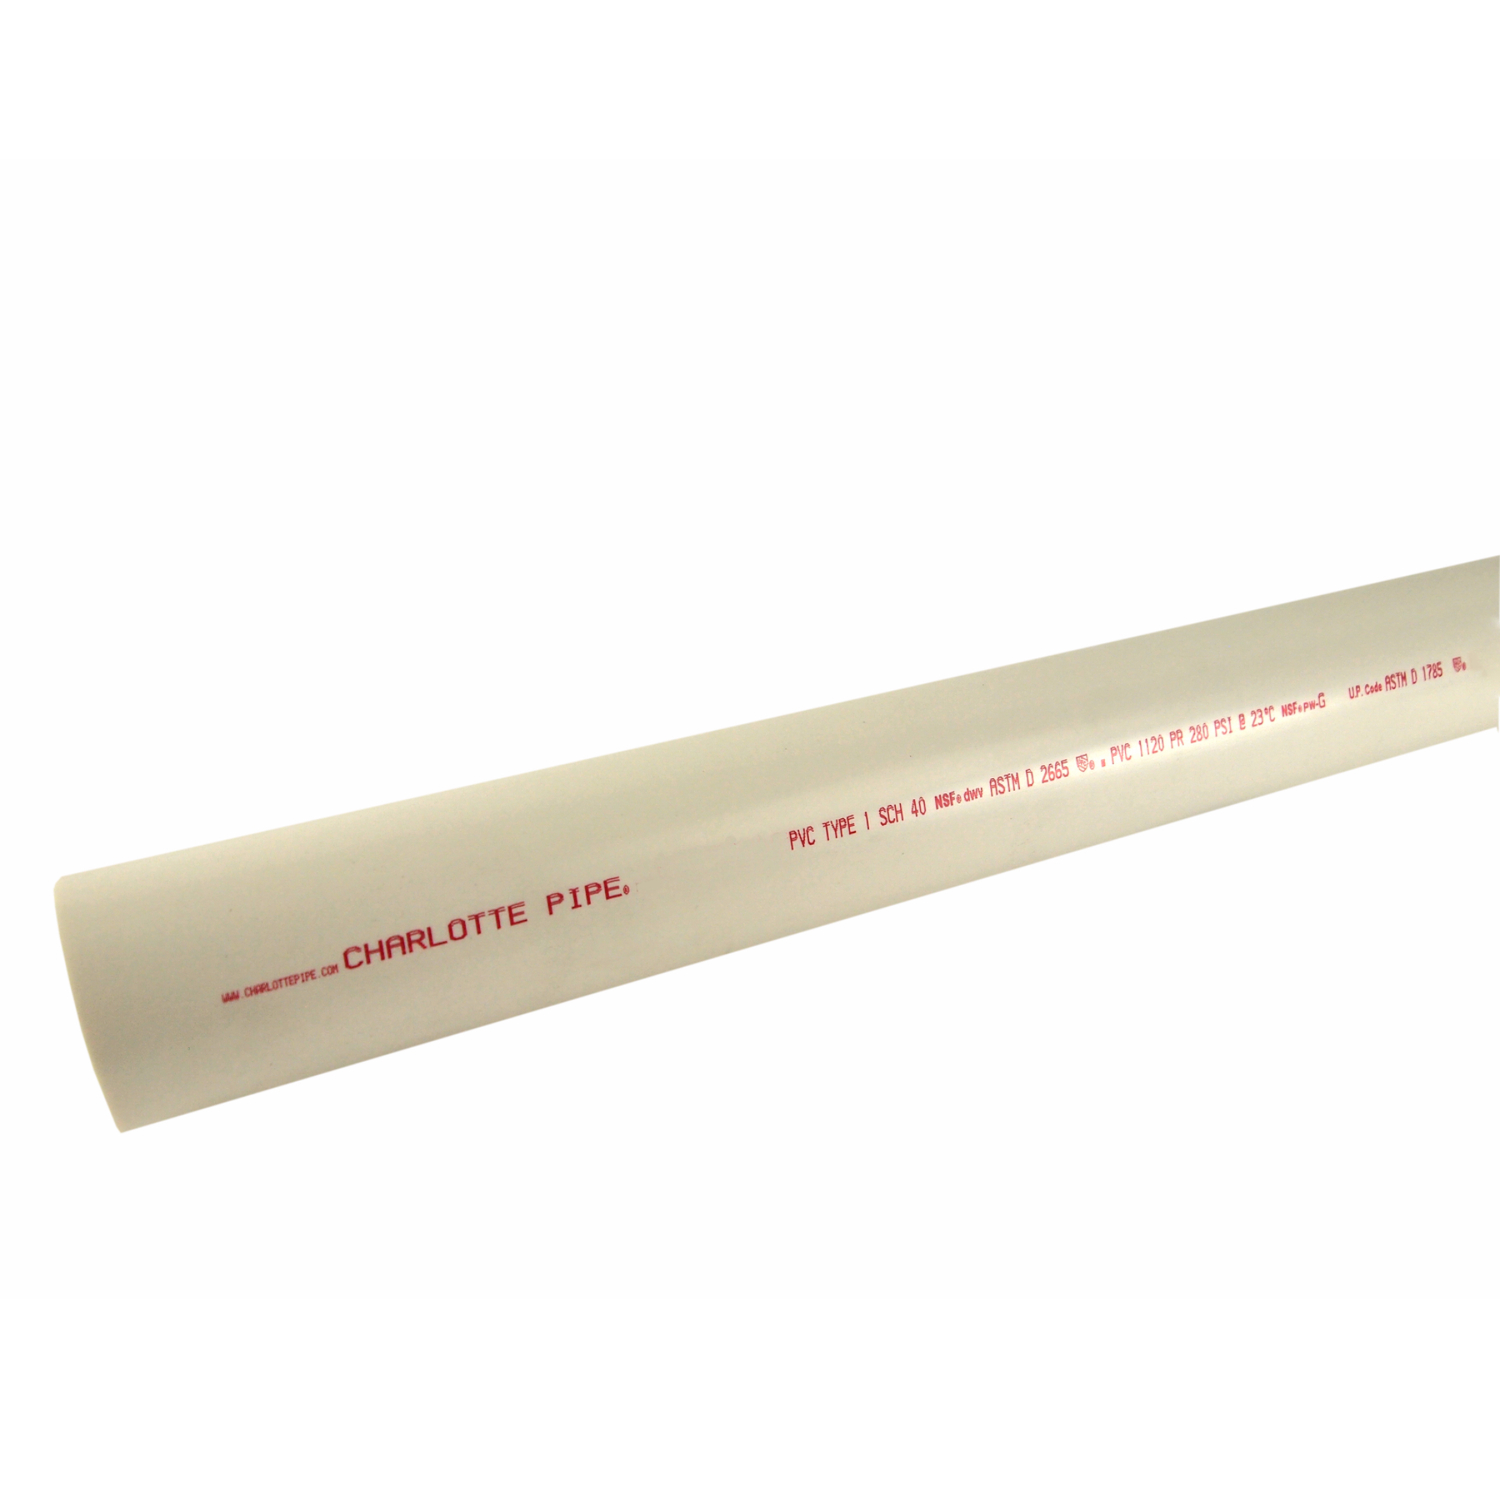 Cresline  1-1/2 in. Dia. x 20 ft. L PVC Pipe  Plain End  Schedule 40  330 psi